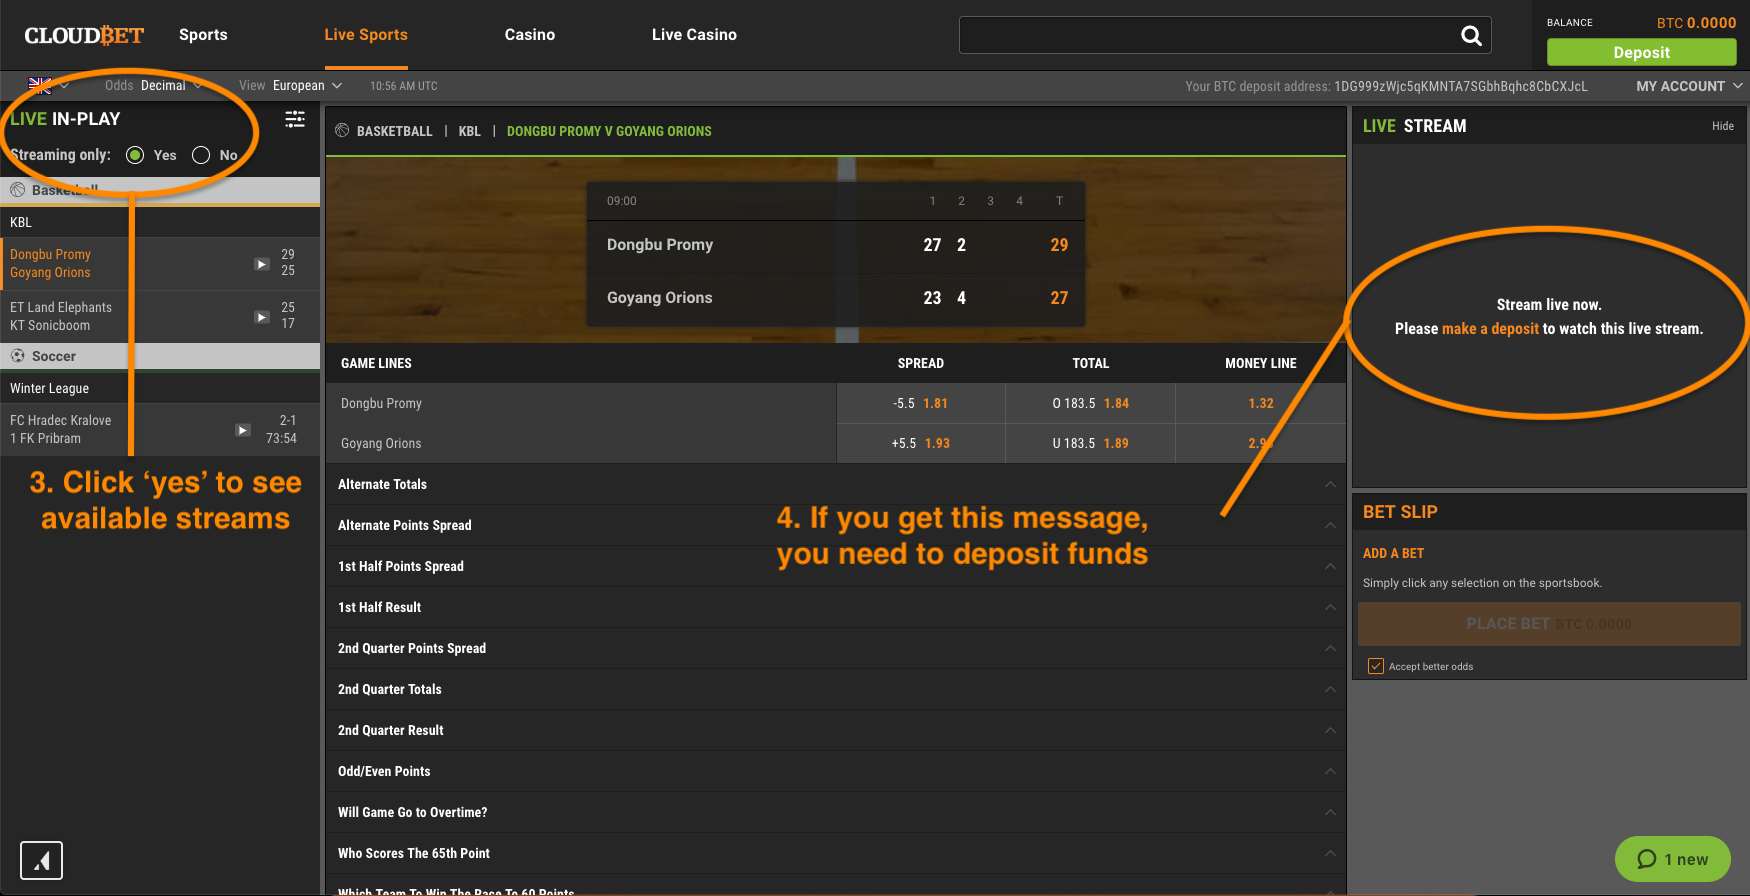 Step 2: click under Live In-Play and check available streams